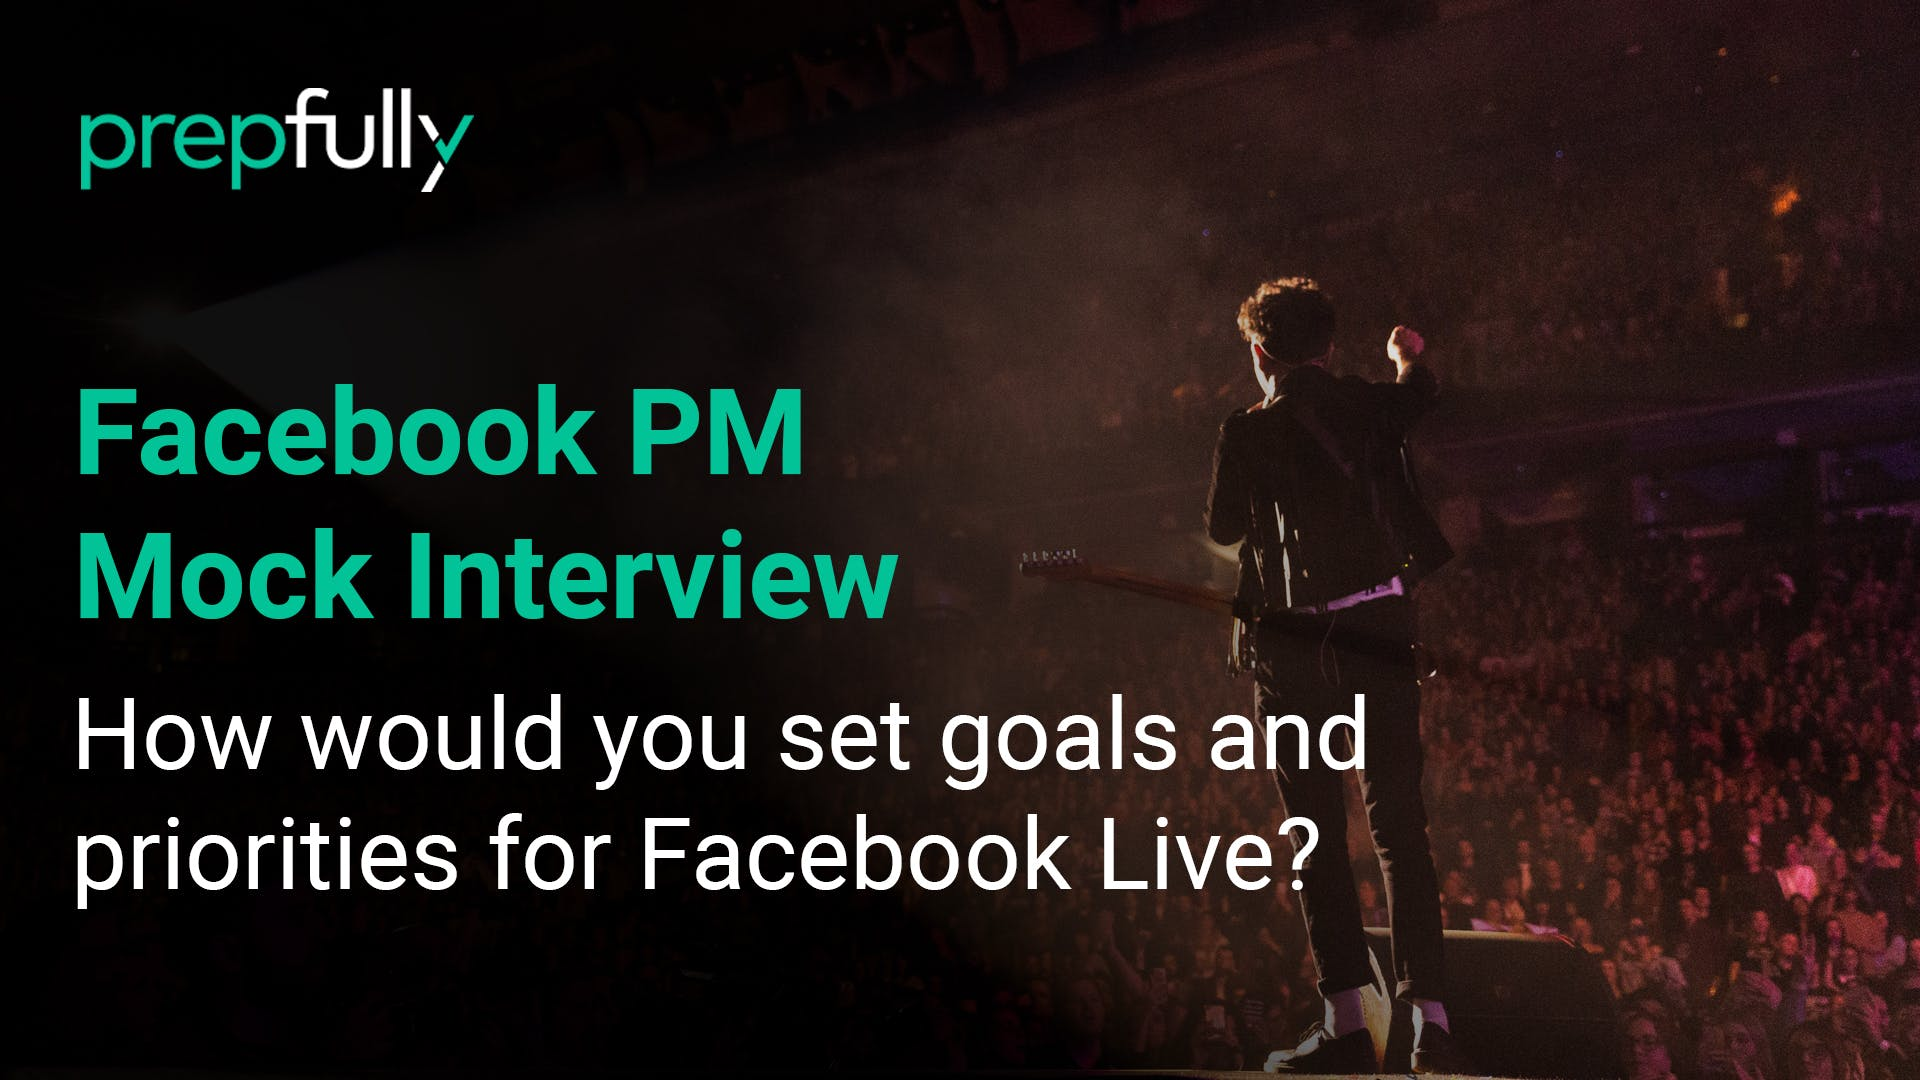 Facebook-PM-Interview-How-would-you-set-goals-and-priorities-for-Facebook-Live